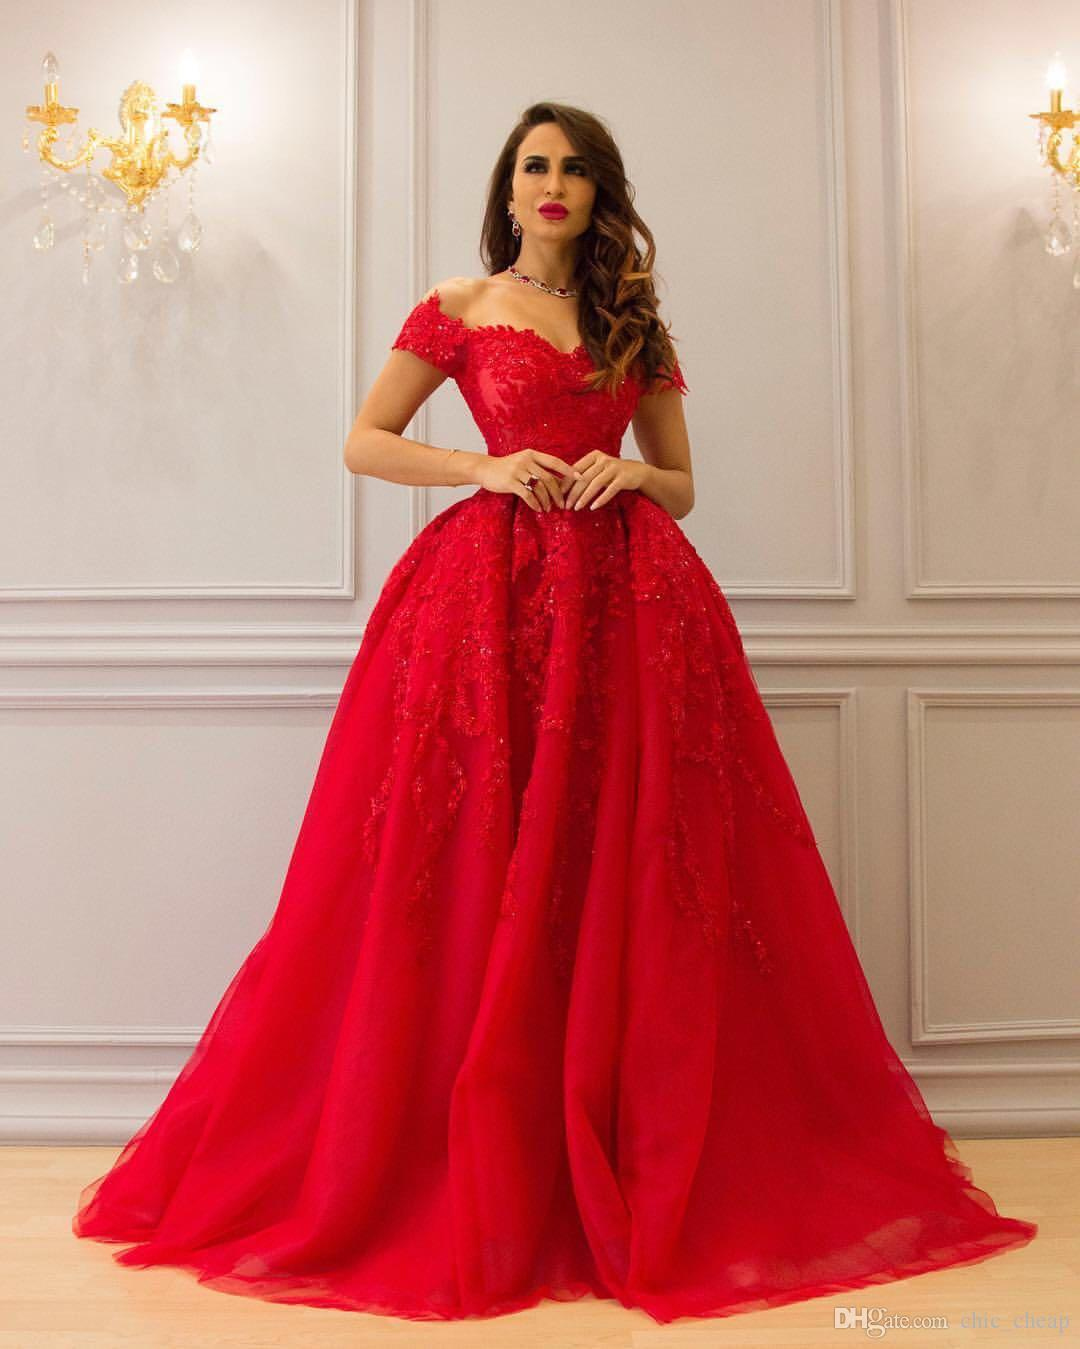 floor length dress off shoulder floor length red sparkly luxurious evening dresses 2018 custom  made a-line NRFQWBI